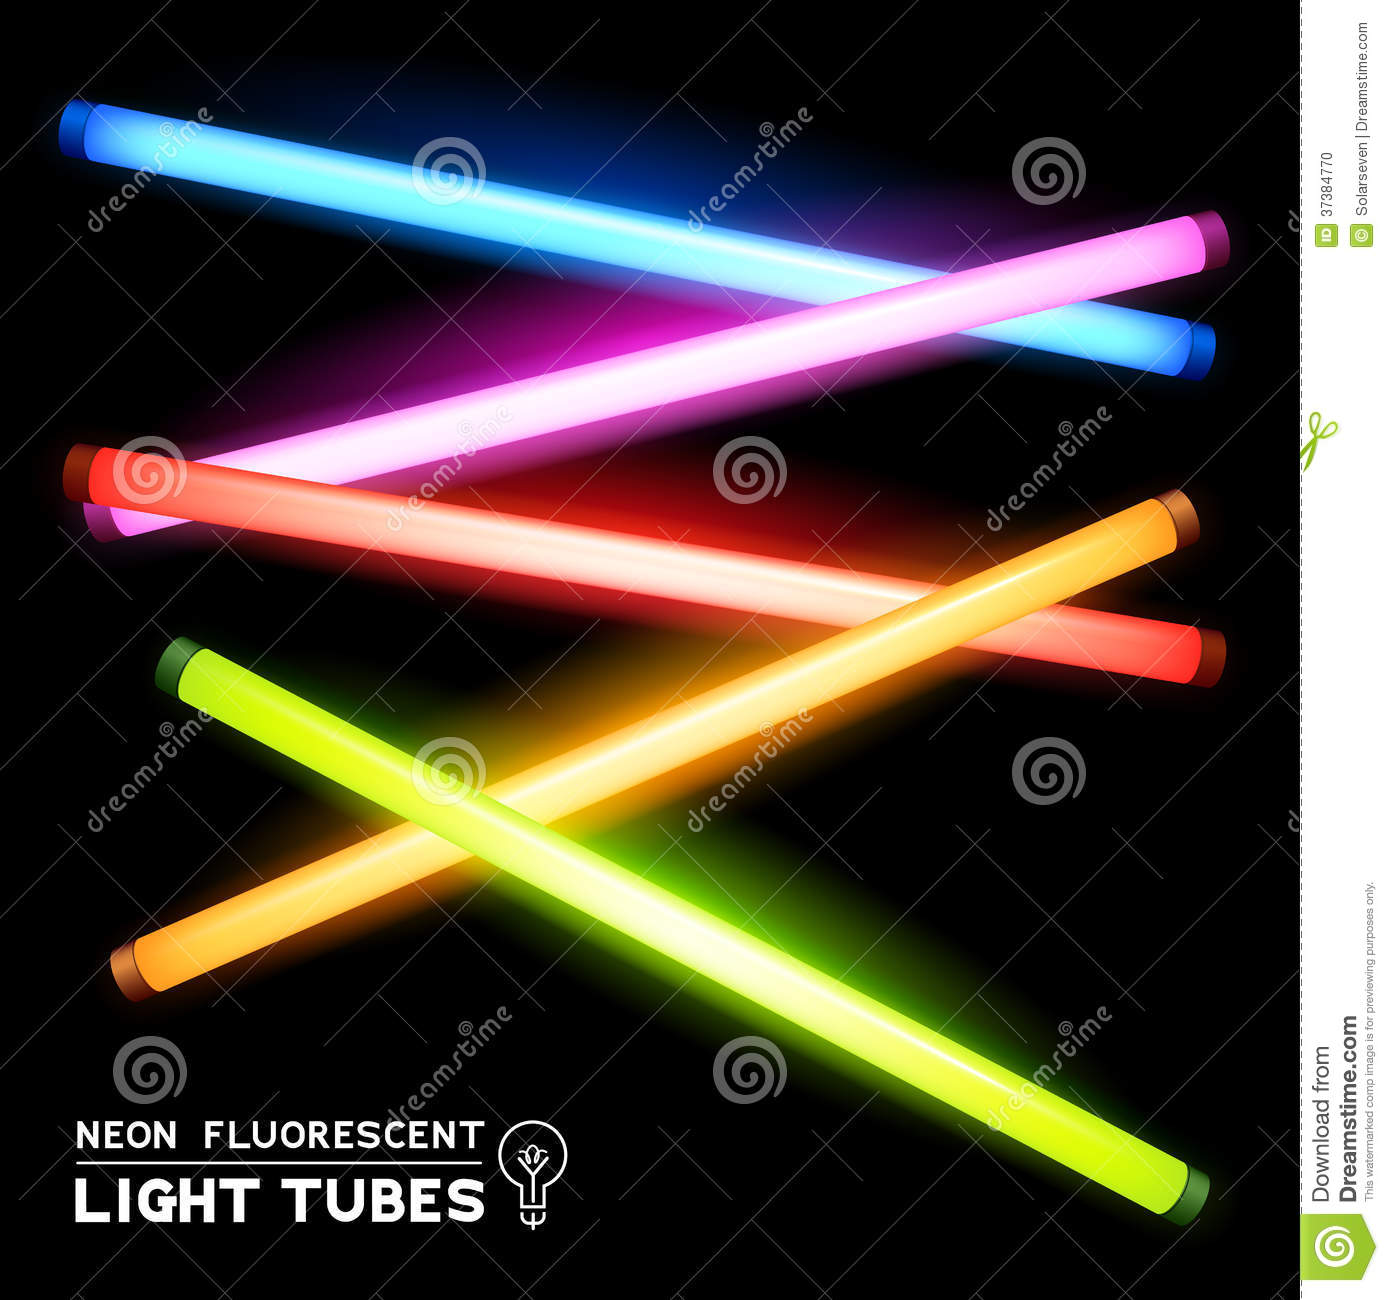 Fluorescent Light Glowing Red: Neon Tubes Soft Background Texture Stock Photo